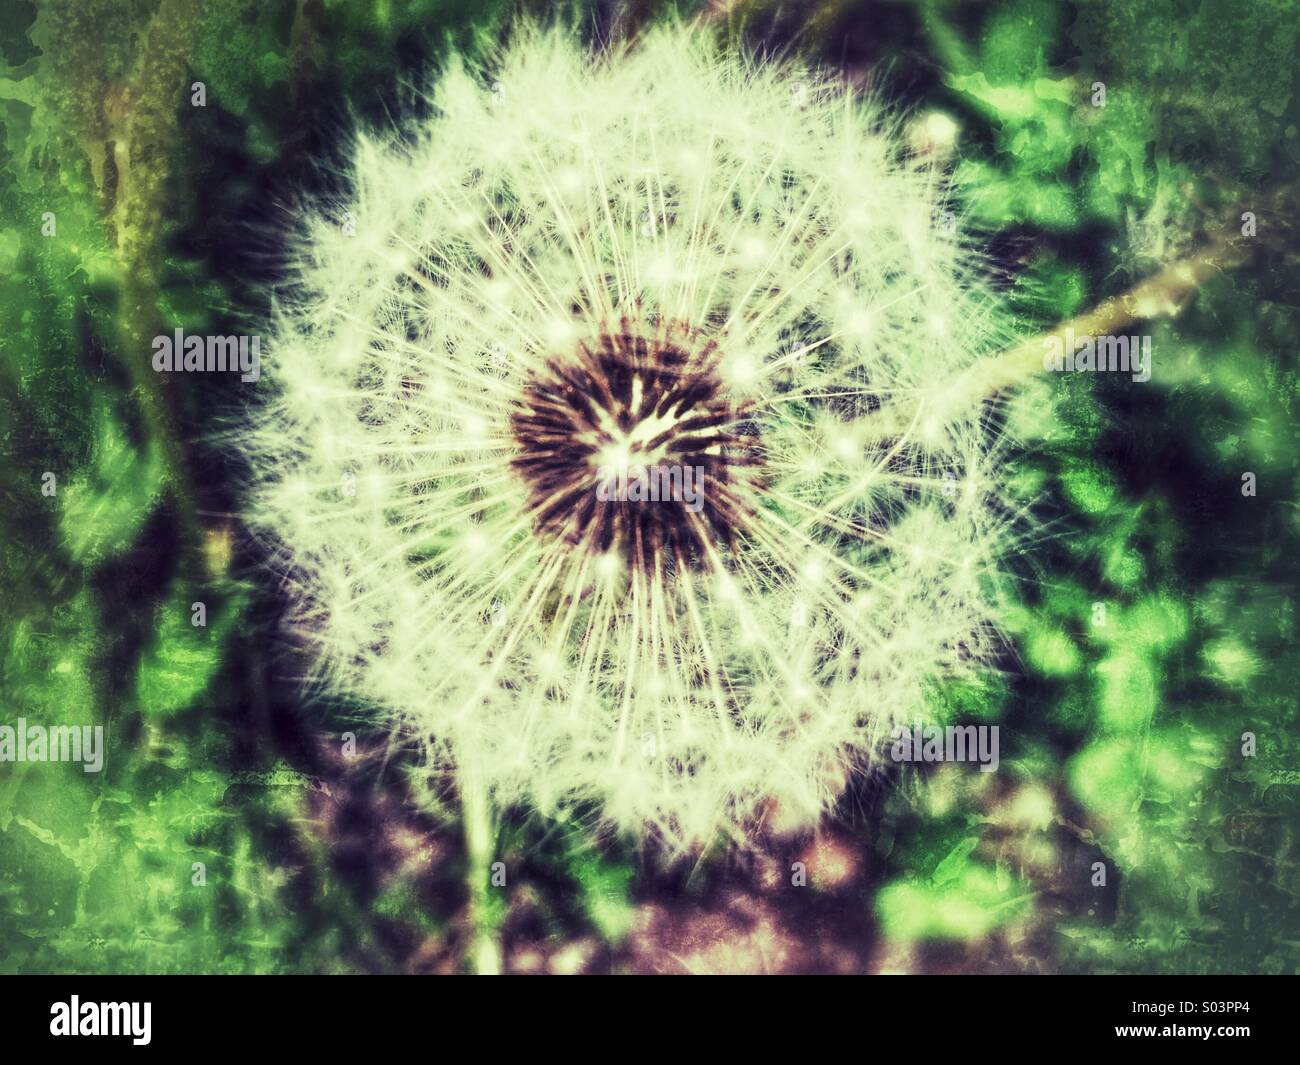 A lone dandelion ready to disperse it's seeds - Stock Image